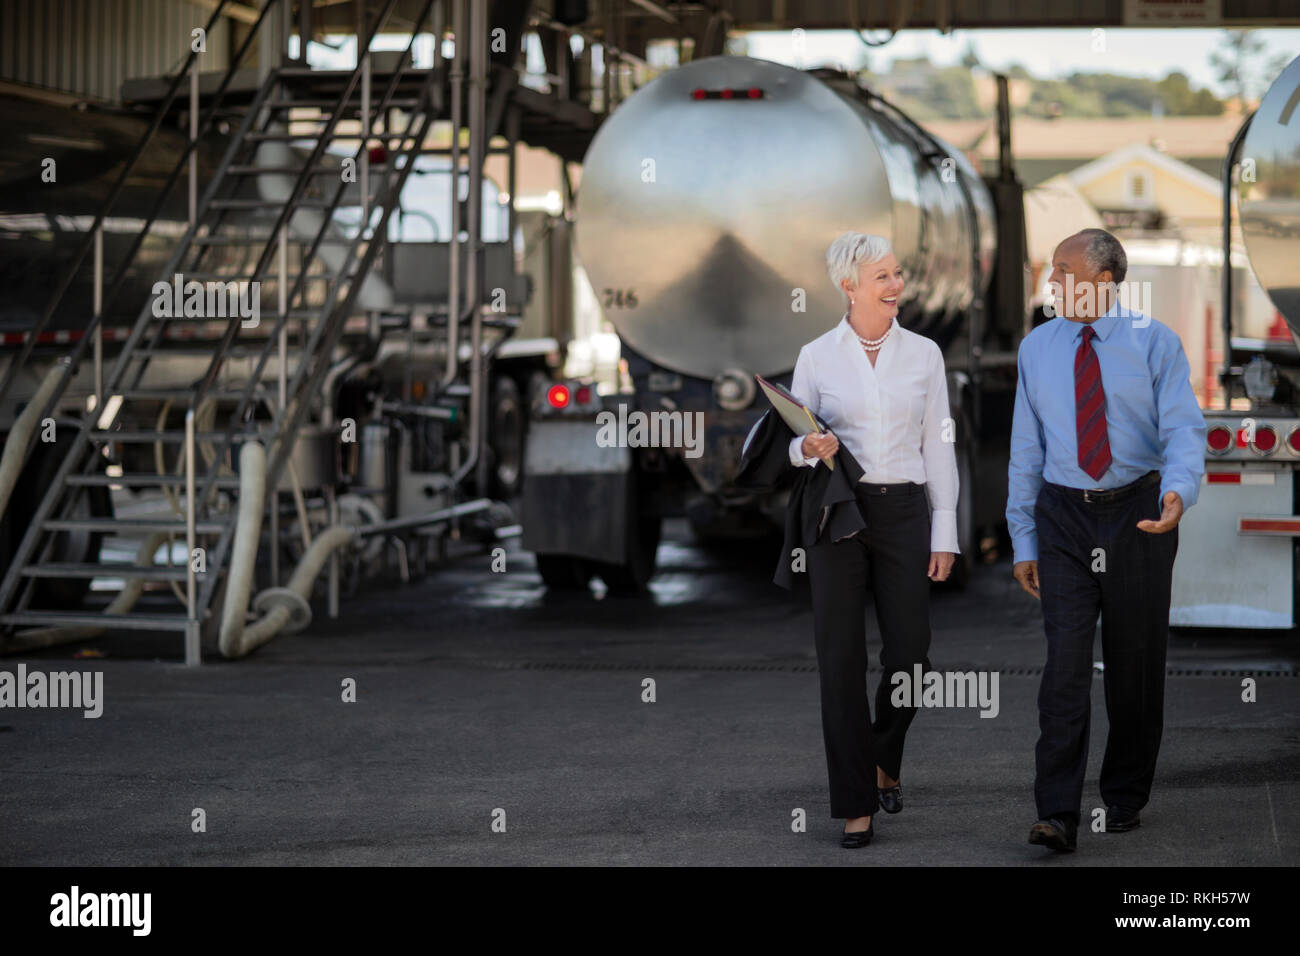 Two mature oil executives discuss the future direction of their company while at the oil truck yard. - Stock Image